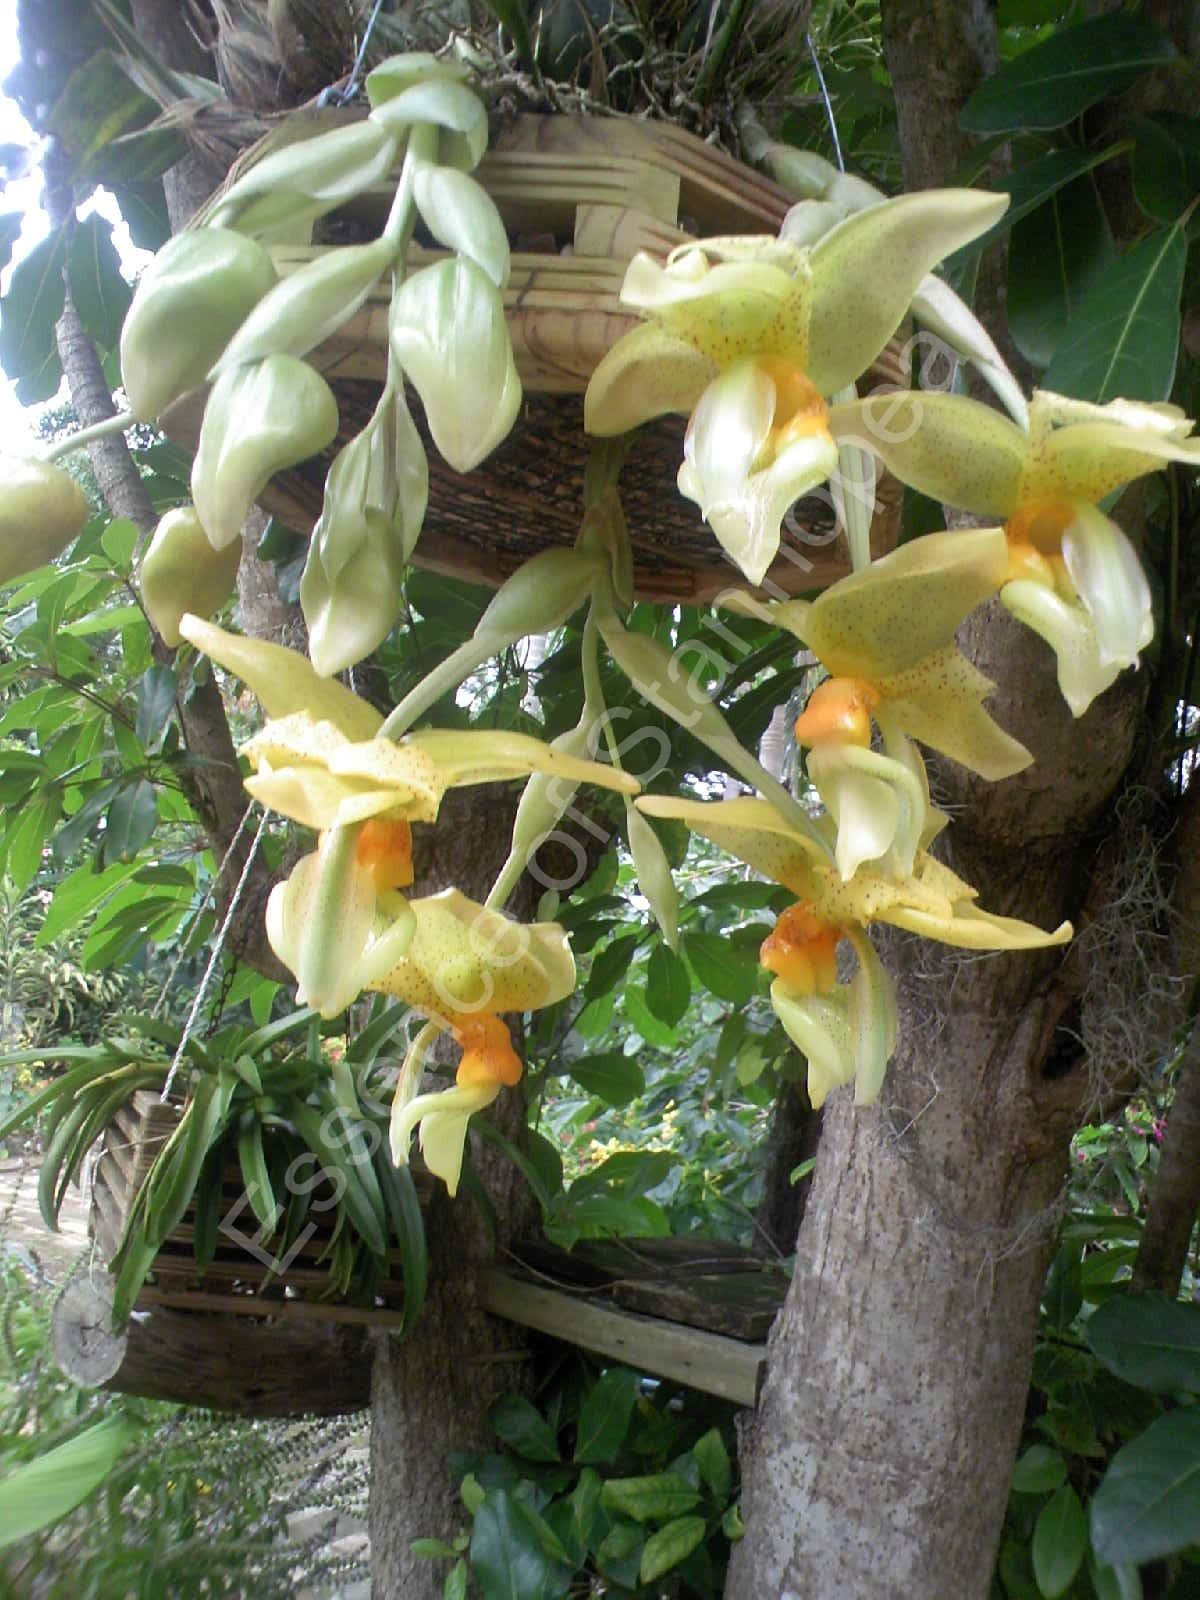 Stanhopea graveolens var aurata - The scent is very strong and spicy, rather complicated, with many pungent undertones of clove, cinnamon, and all spice. The flowers appear delicate and light, but actually quite tough and waxy.